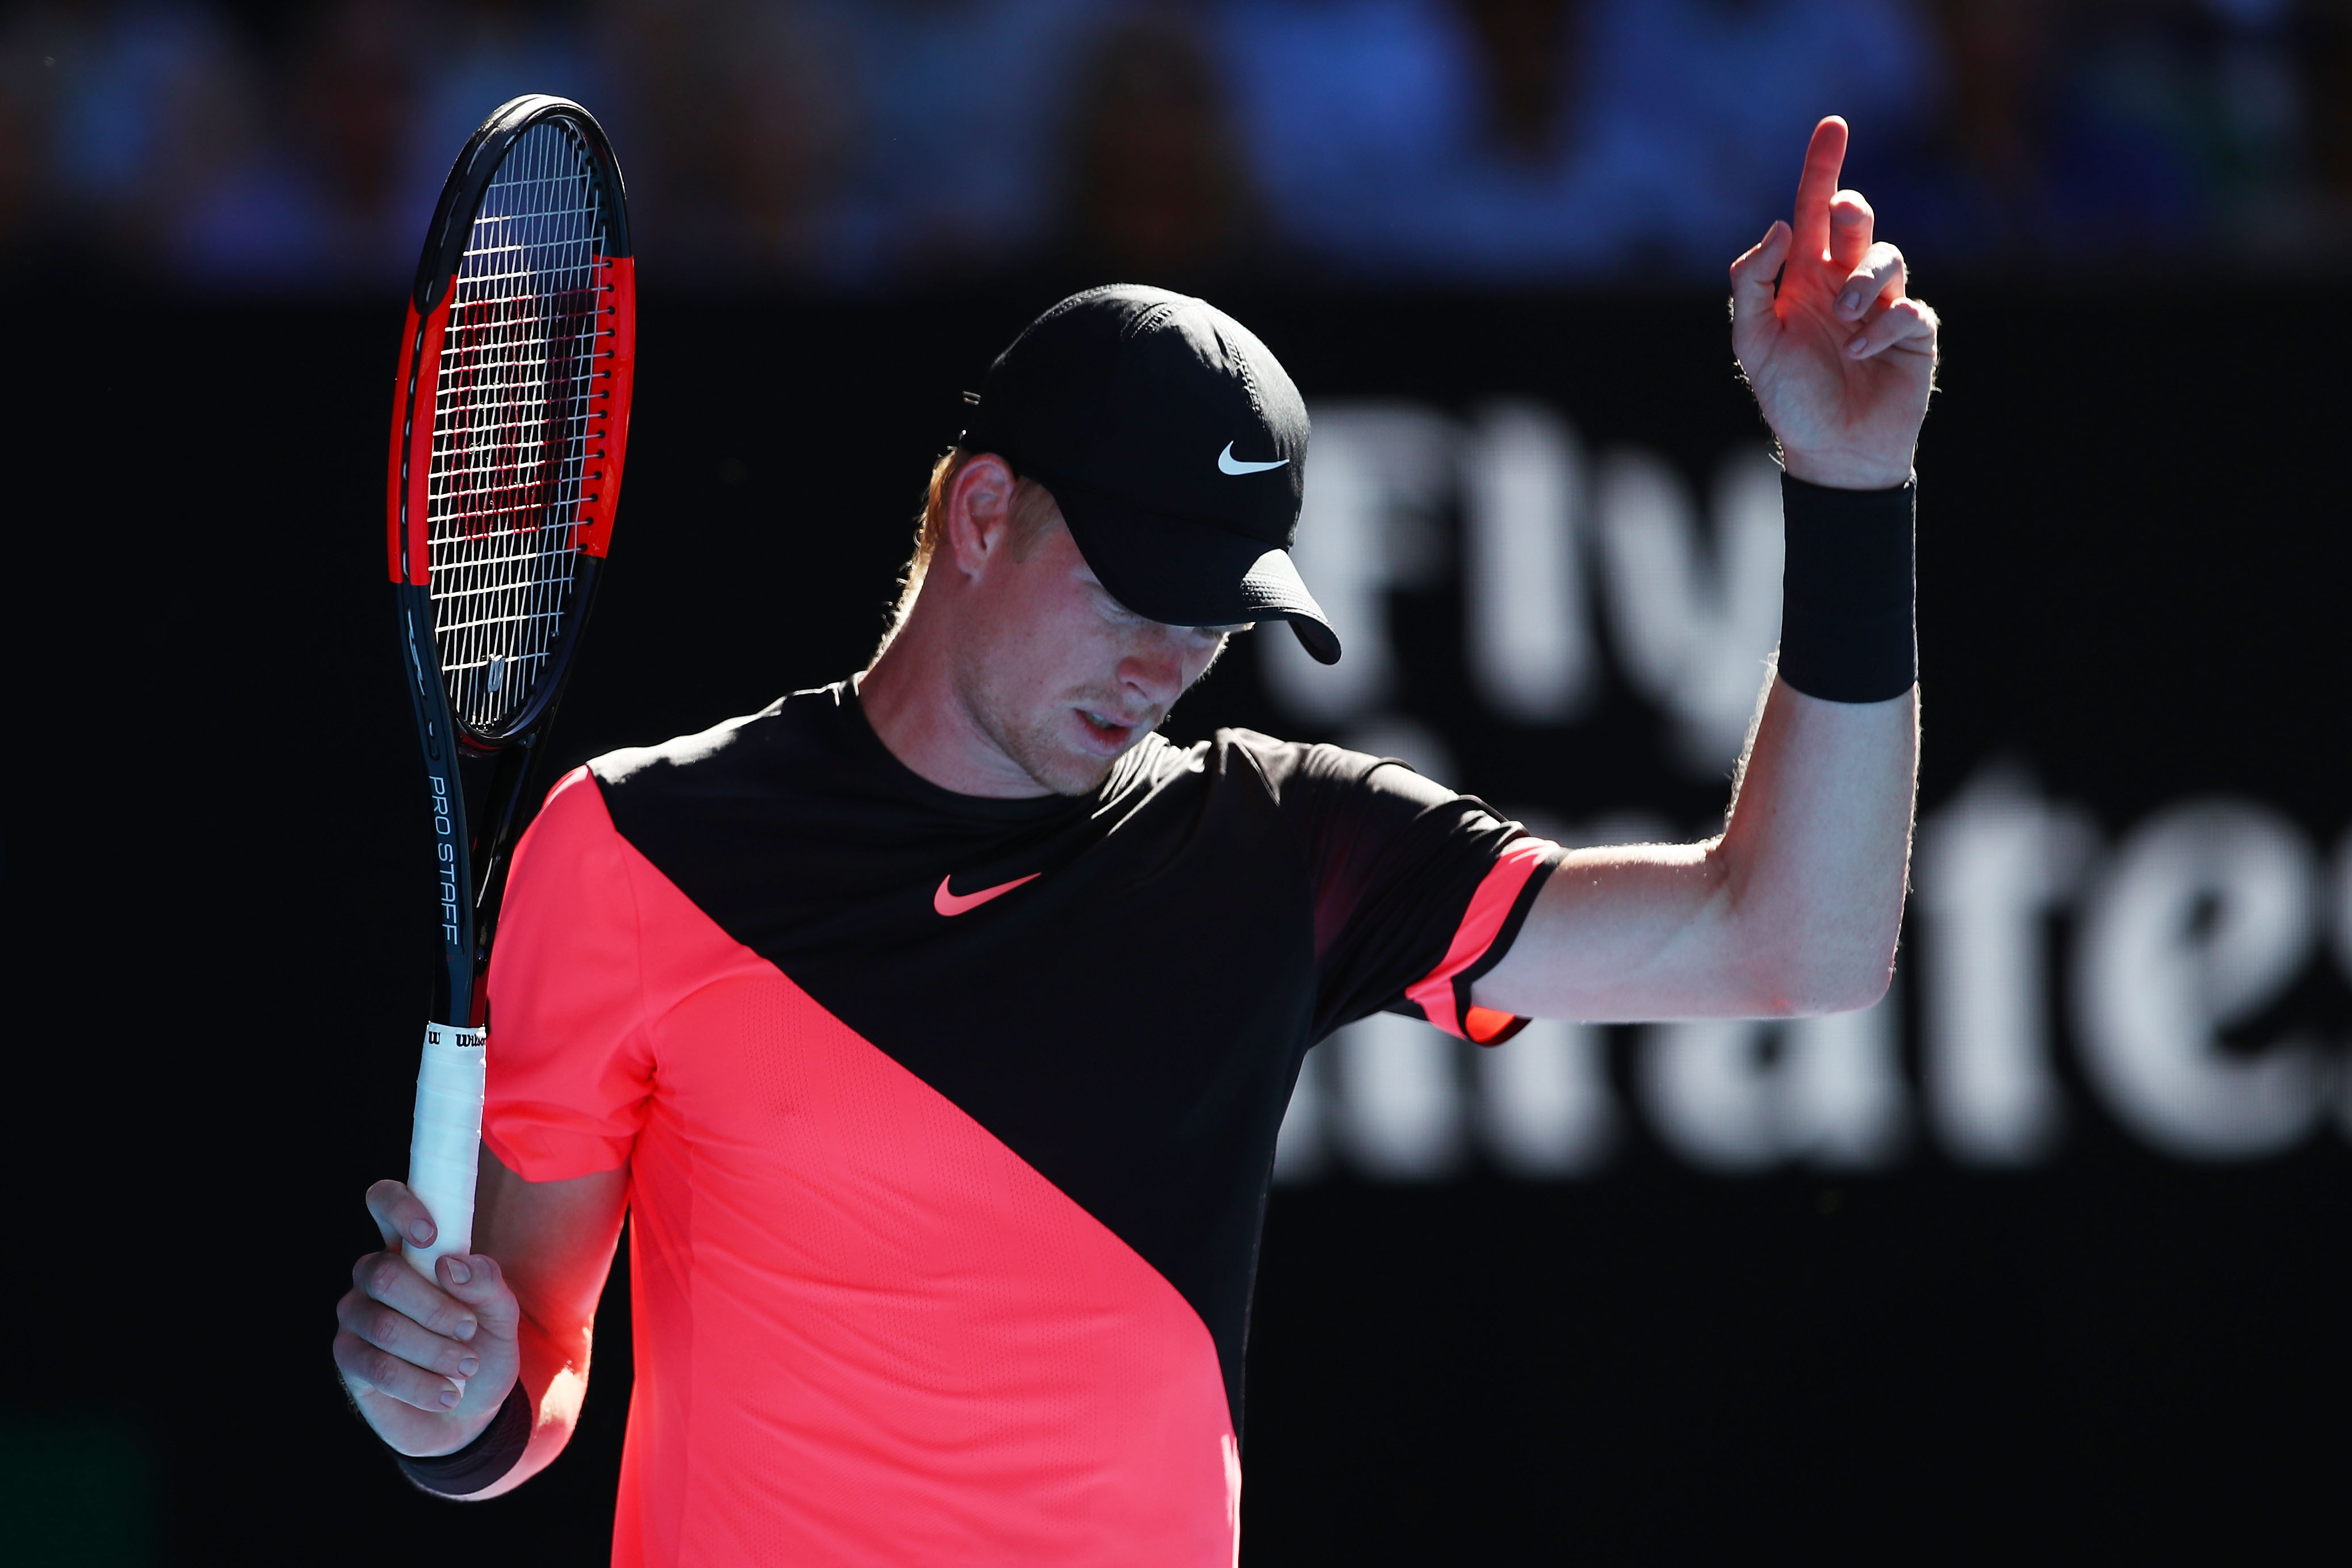 Kyle Edmund in the quarter-final, Australian Open 2018